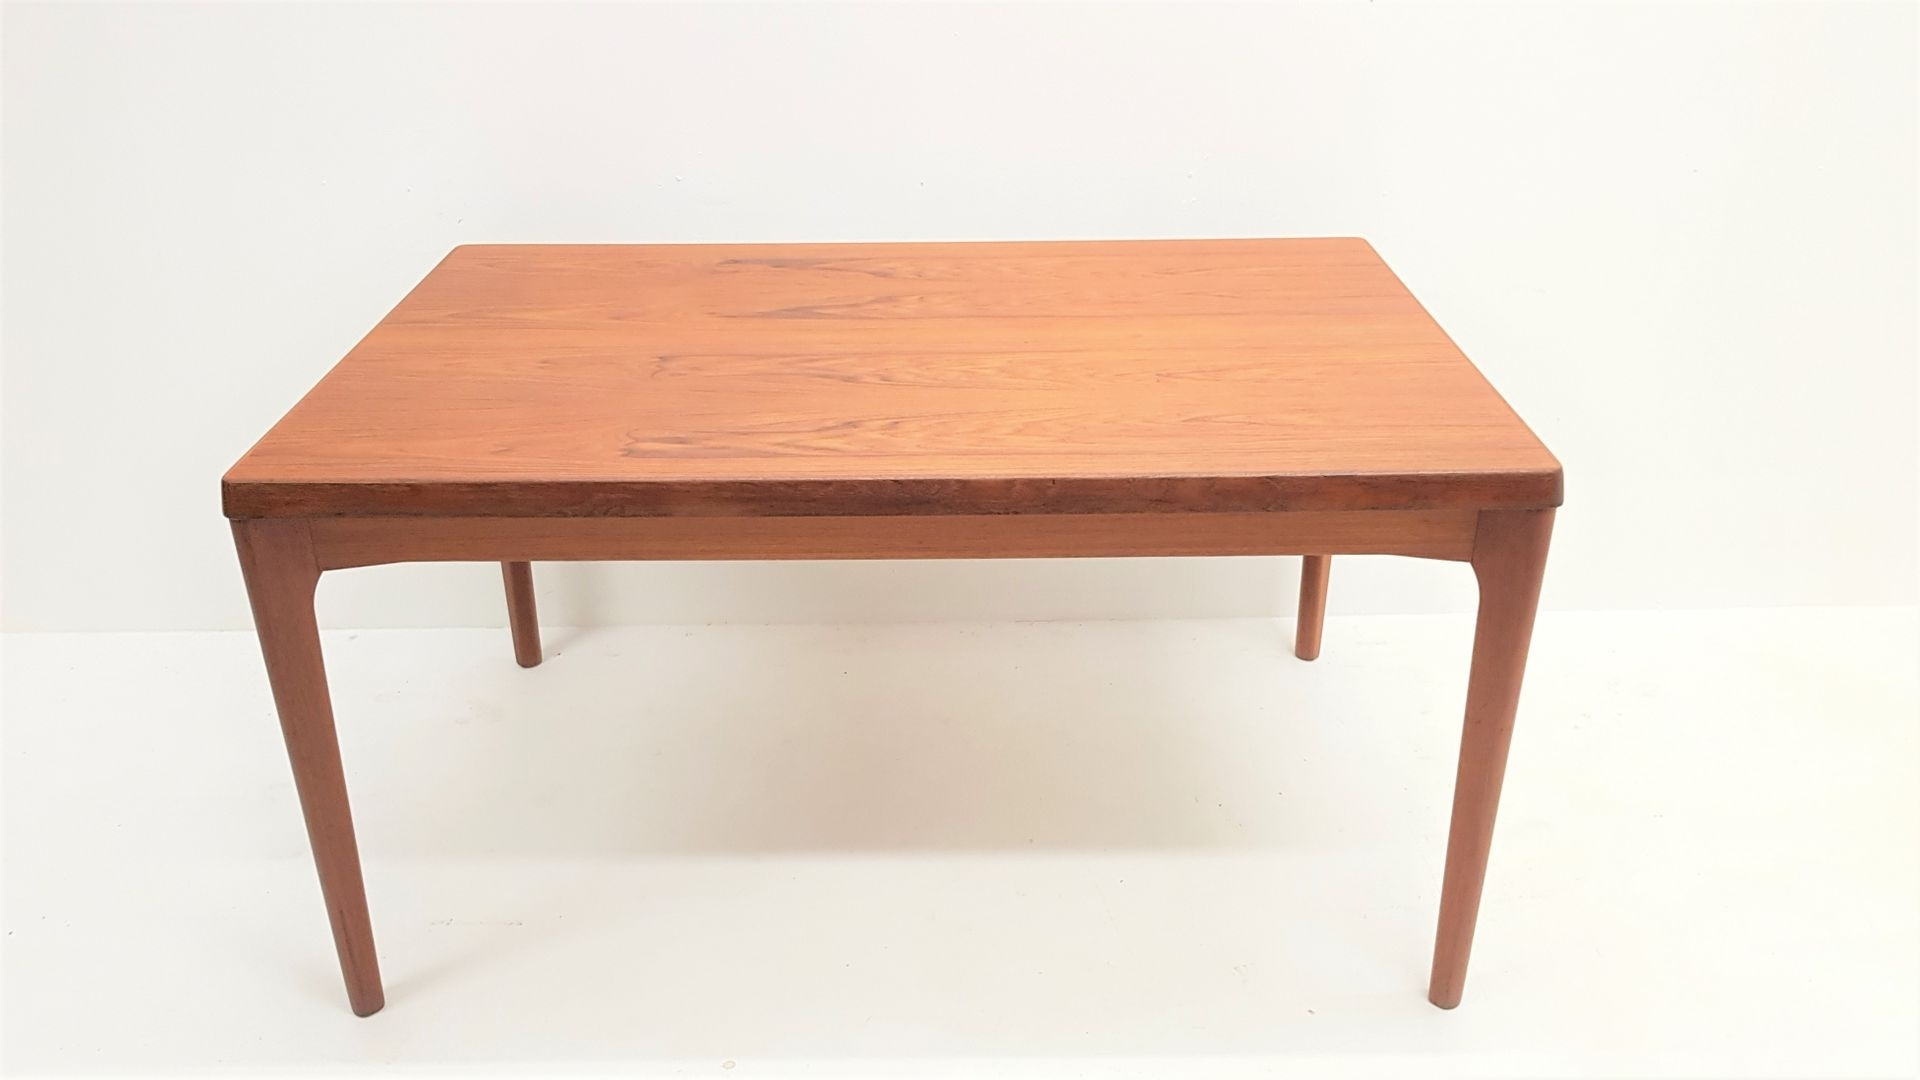 Recent Teak Extendable Dining Tablehenning Kjærnulf For Vejle Within Square Extendable Dining Tables (View 12 of 25)